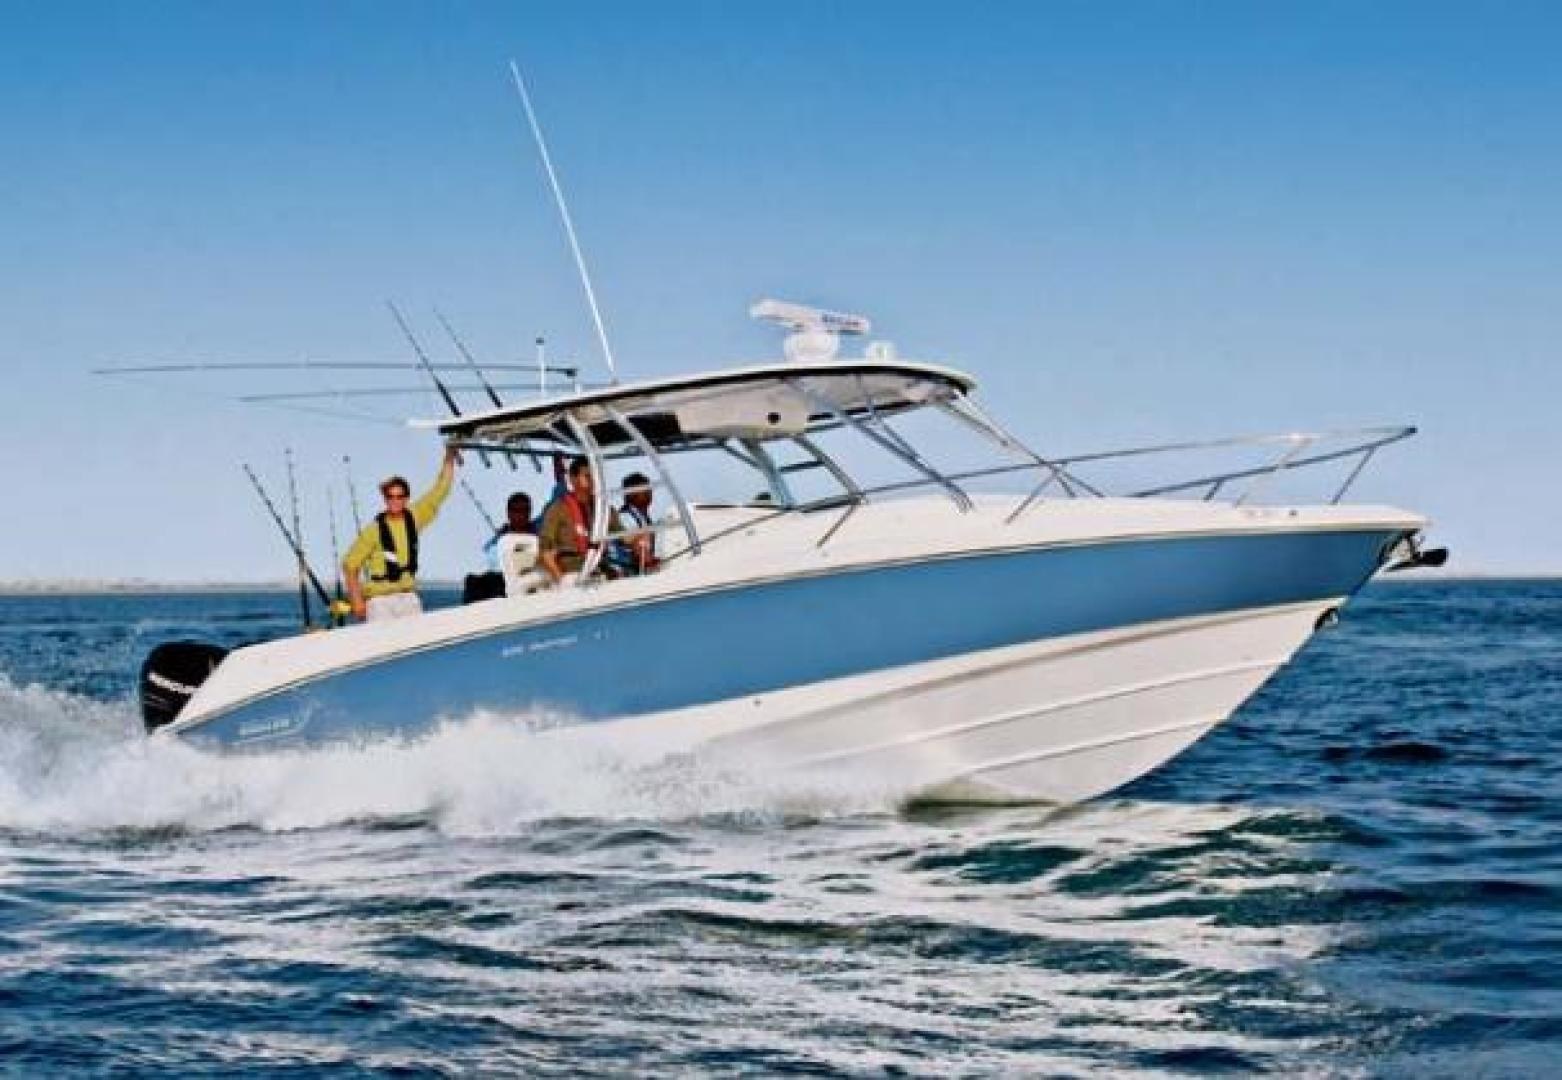 Boston Whaler-320 Outrage Cuddy Cabin 2008 -Onset-Massachusetts-United States-Mfr Provided Image-1447509 | Thumbnail